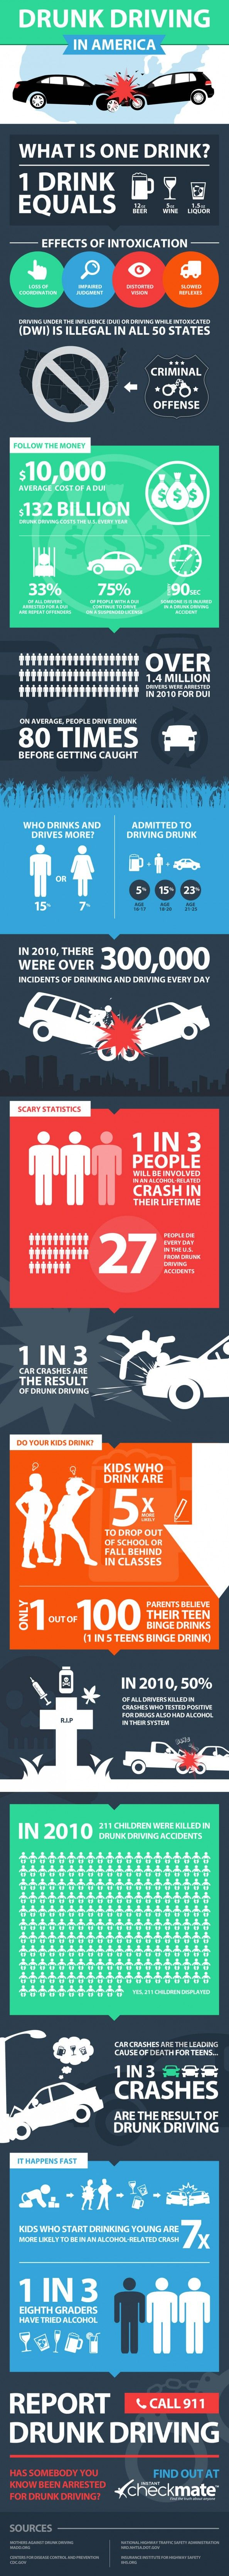 best ideas about drunk driving advertising ads drunk driving in america infographic we need to put an end to drunk driving i